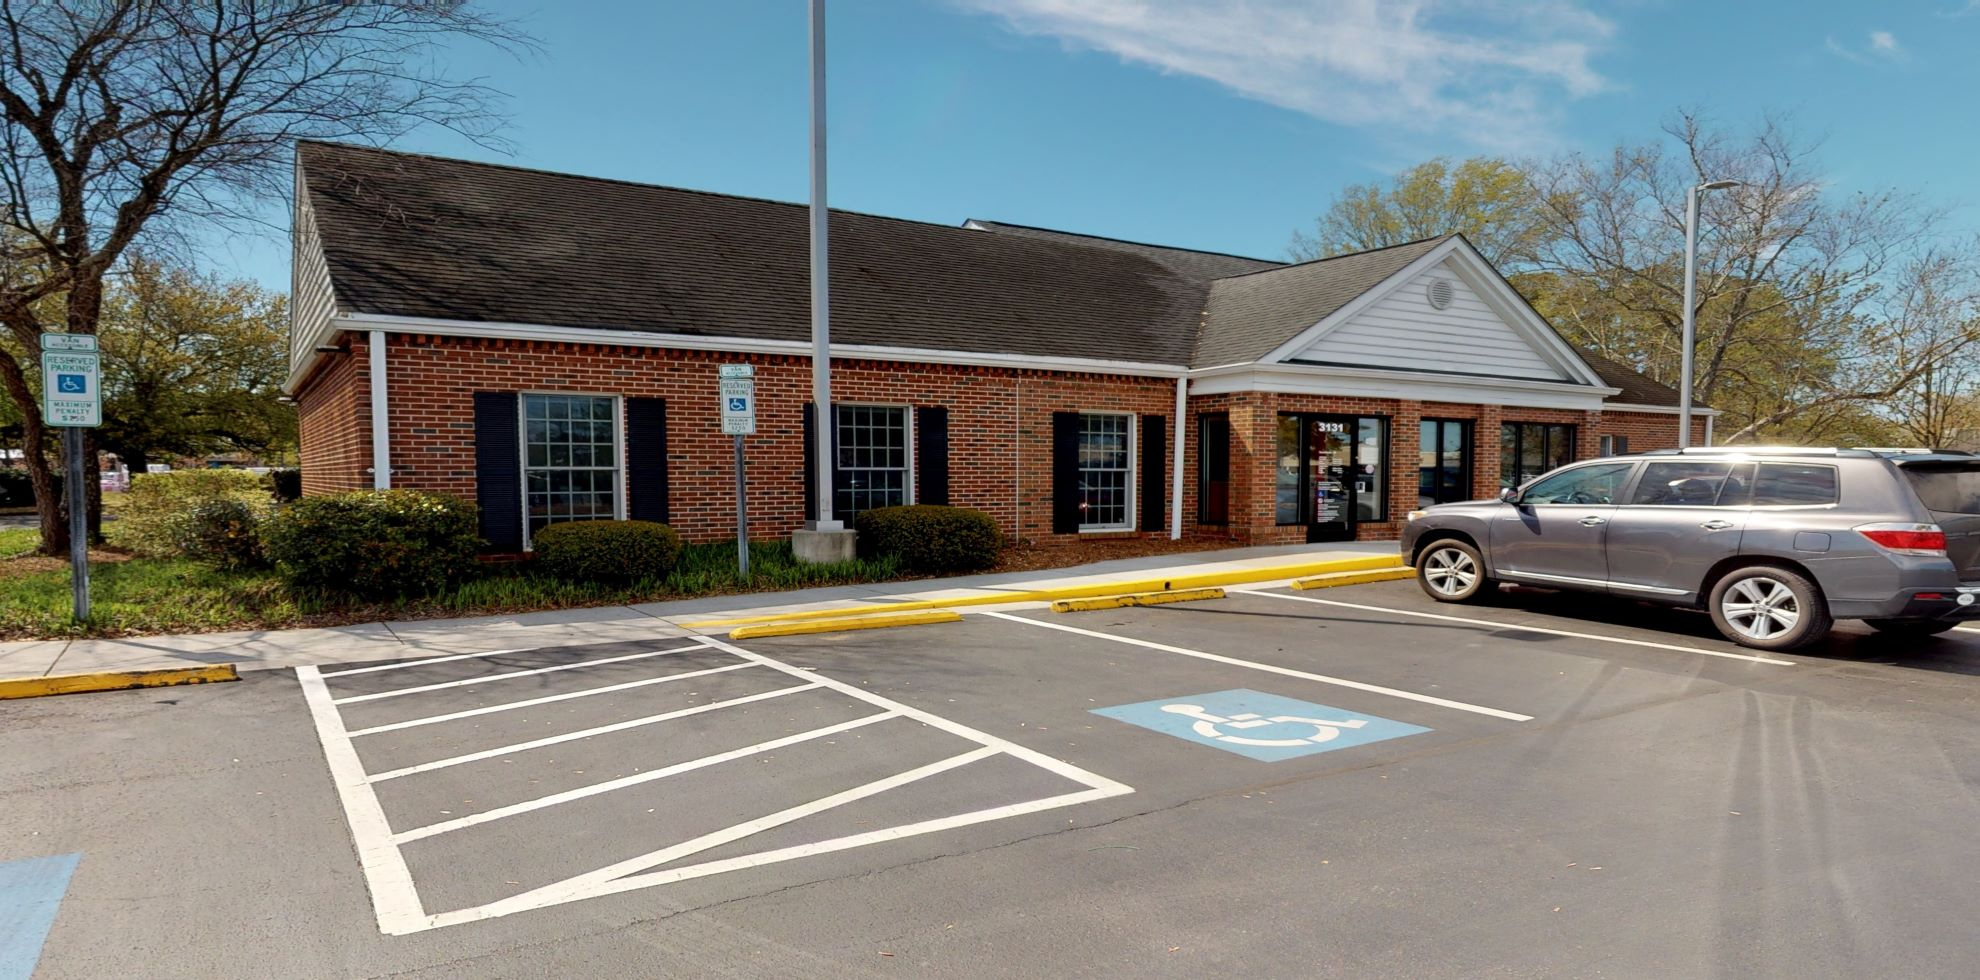 Bank of America financial center with drive-thru ATM and teller | 3131 M L King Jr Blvd, New Bern, NC 28562